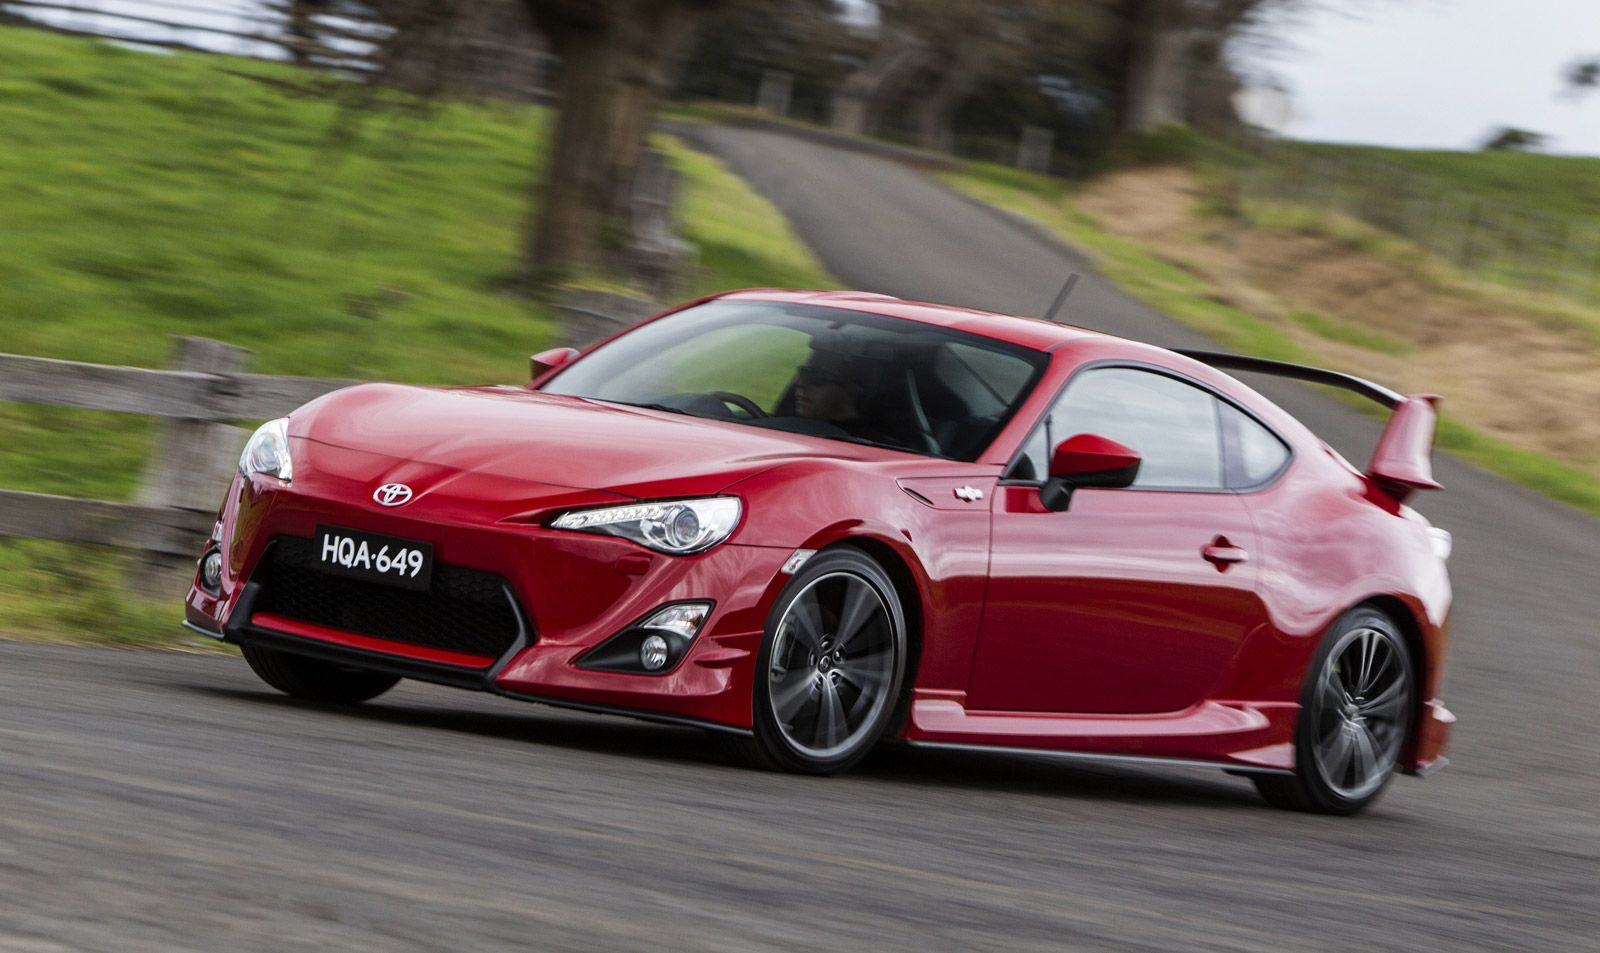 Poor Sales Of Toyota Gt 86 Scion Fr S Likely To Rule Out New Variants Toyota 86 Toyota Gt86 Toyota